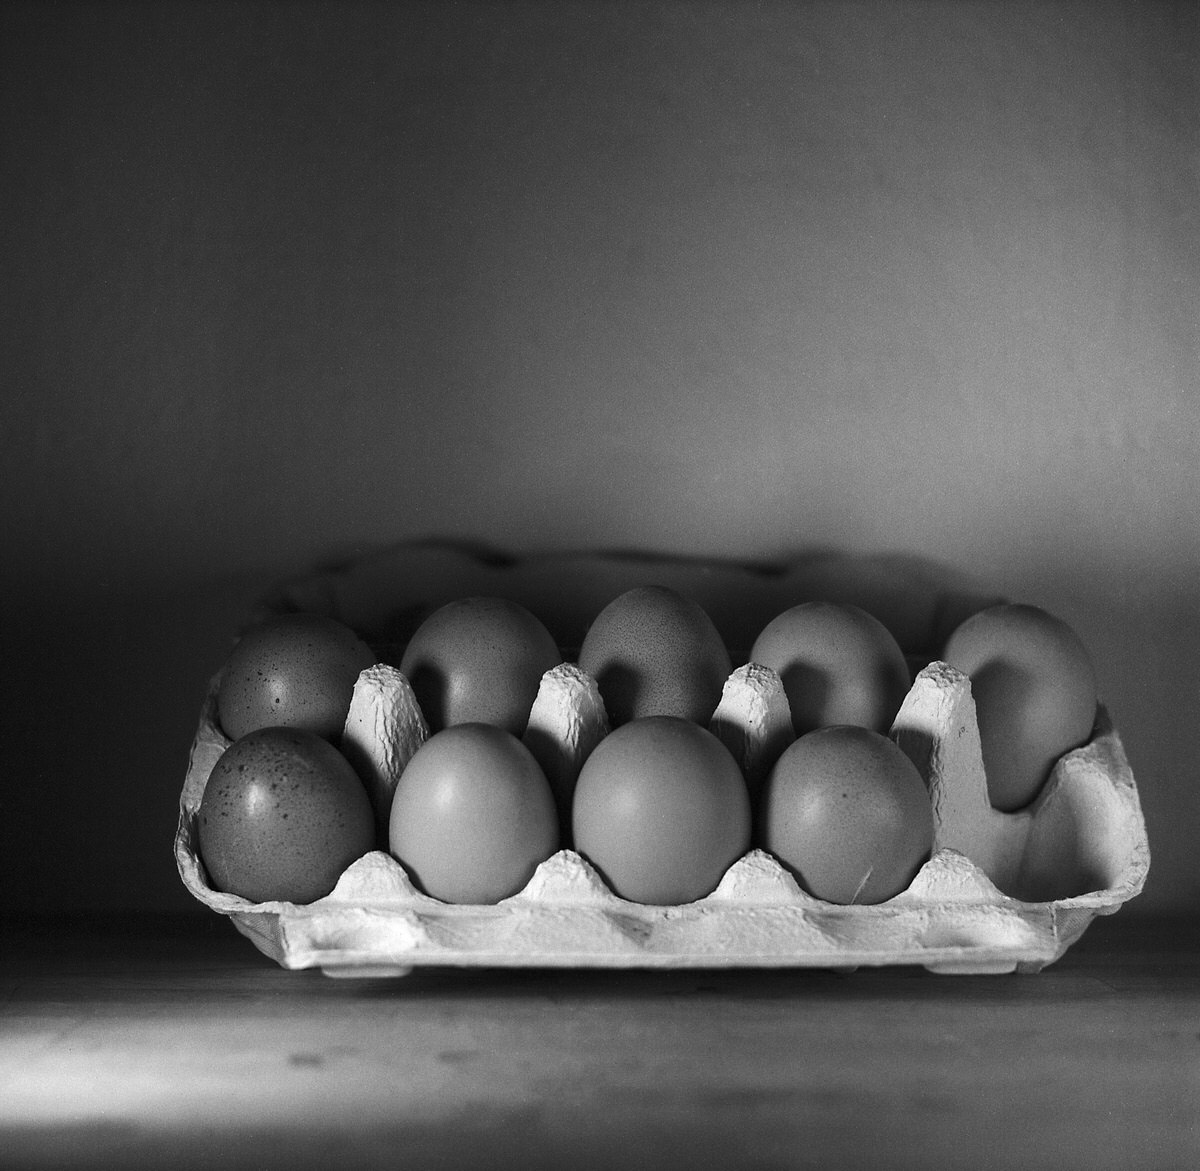 Eggs #2 - Still Life Photography | Yashica MAT124 with Fomapan